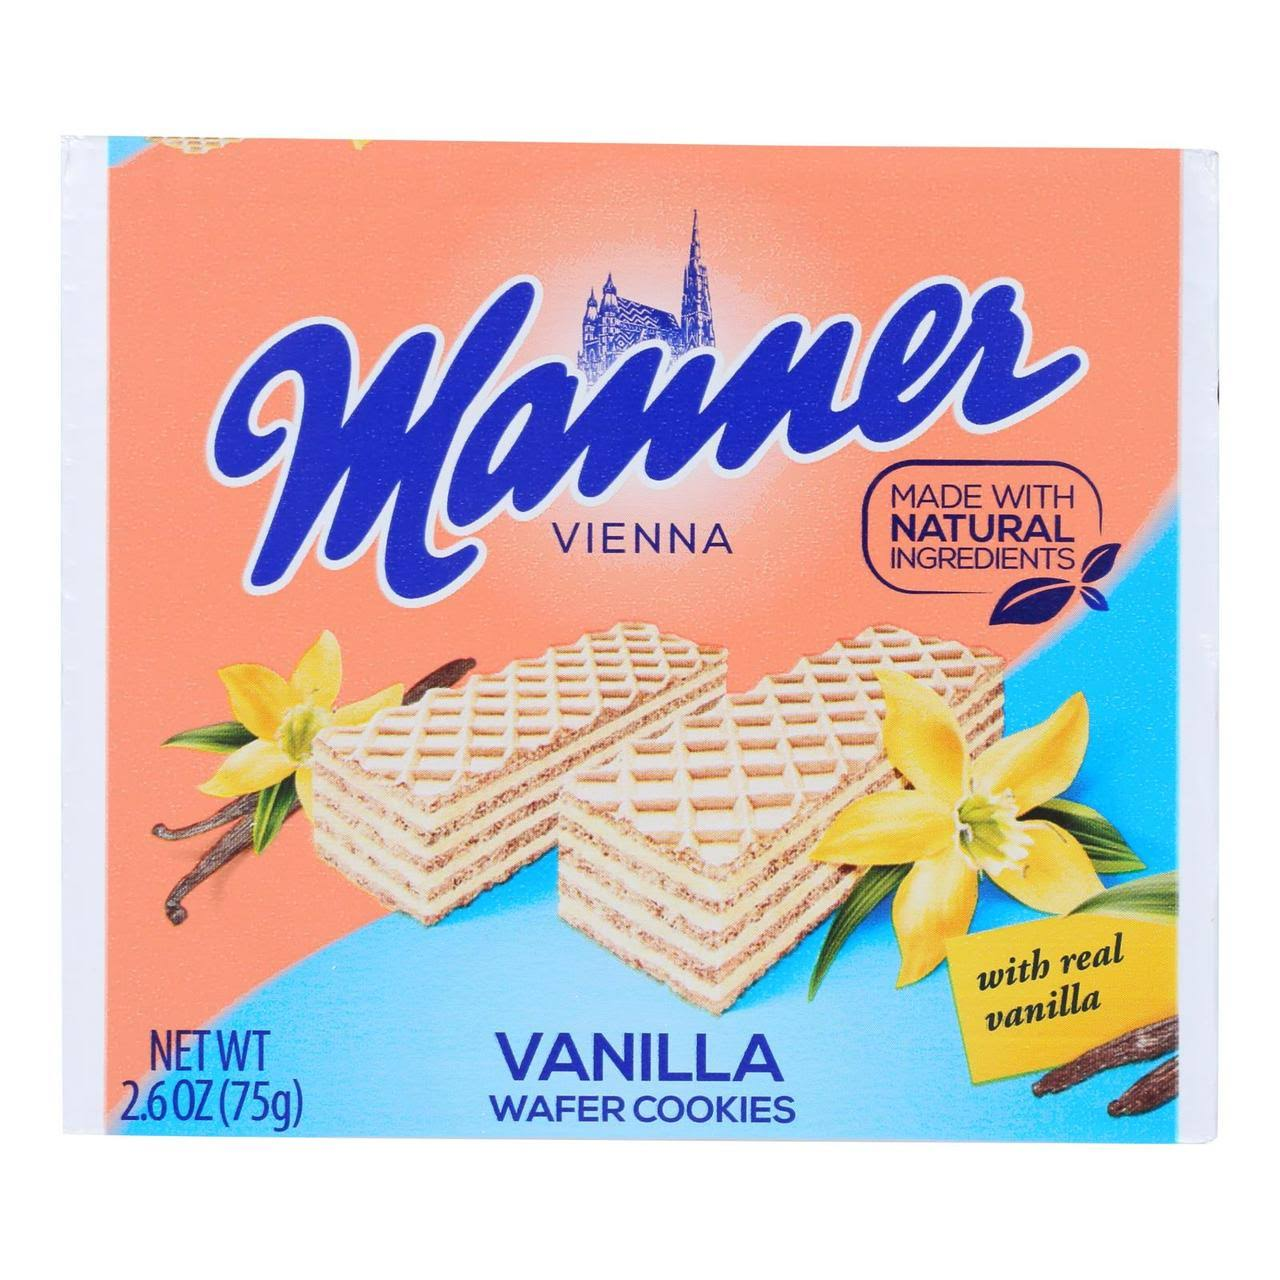 Manner Wafer Cookies, Vanilla